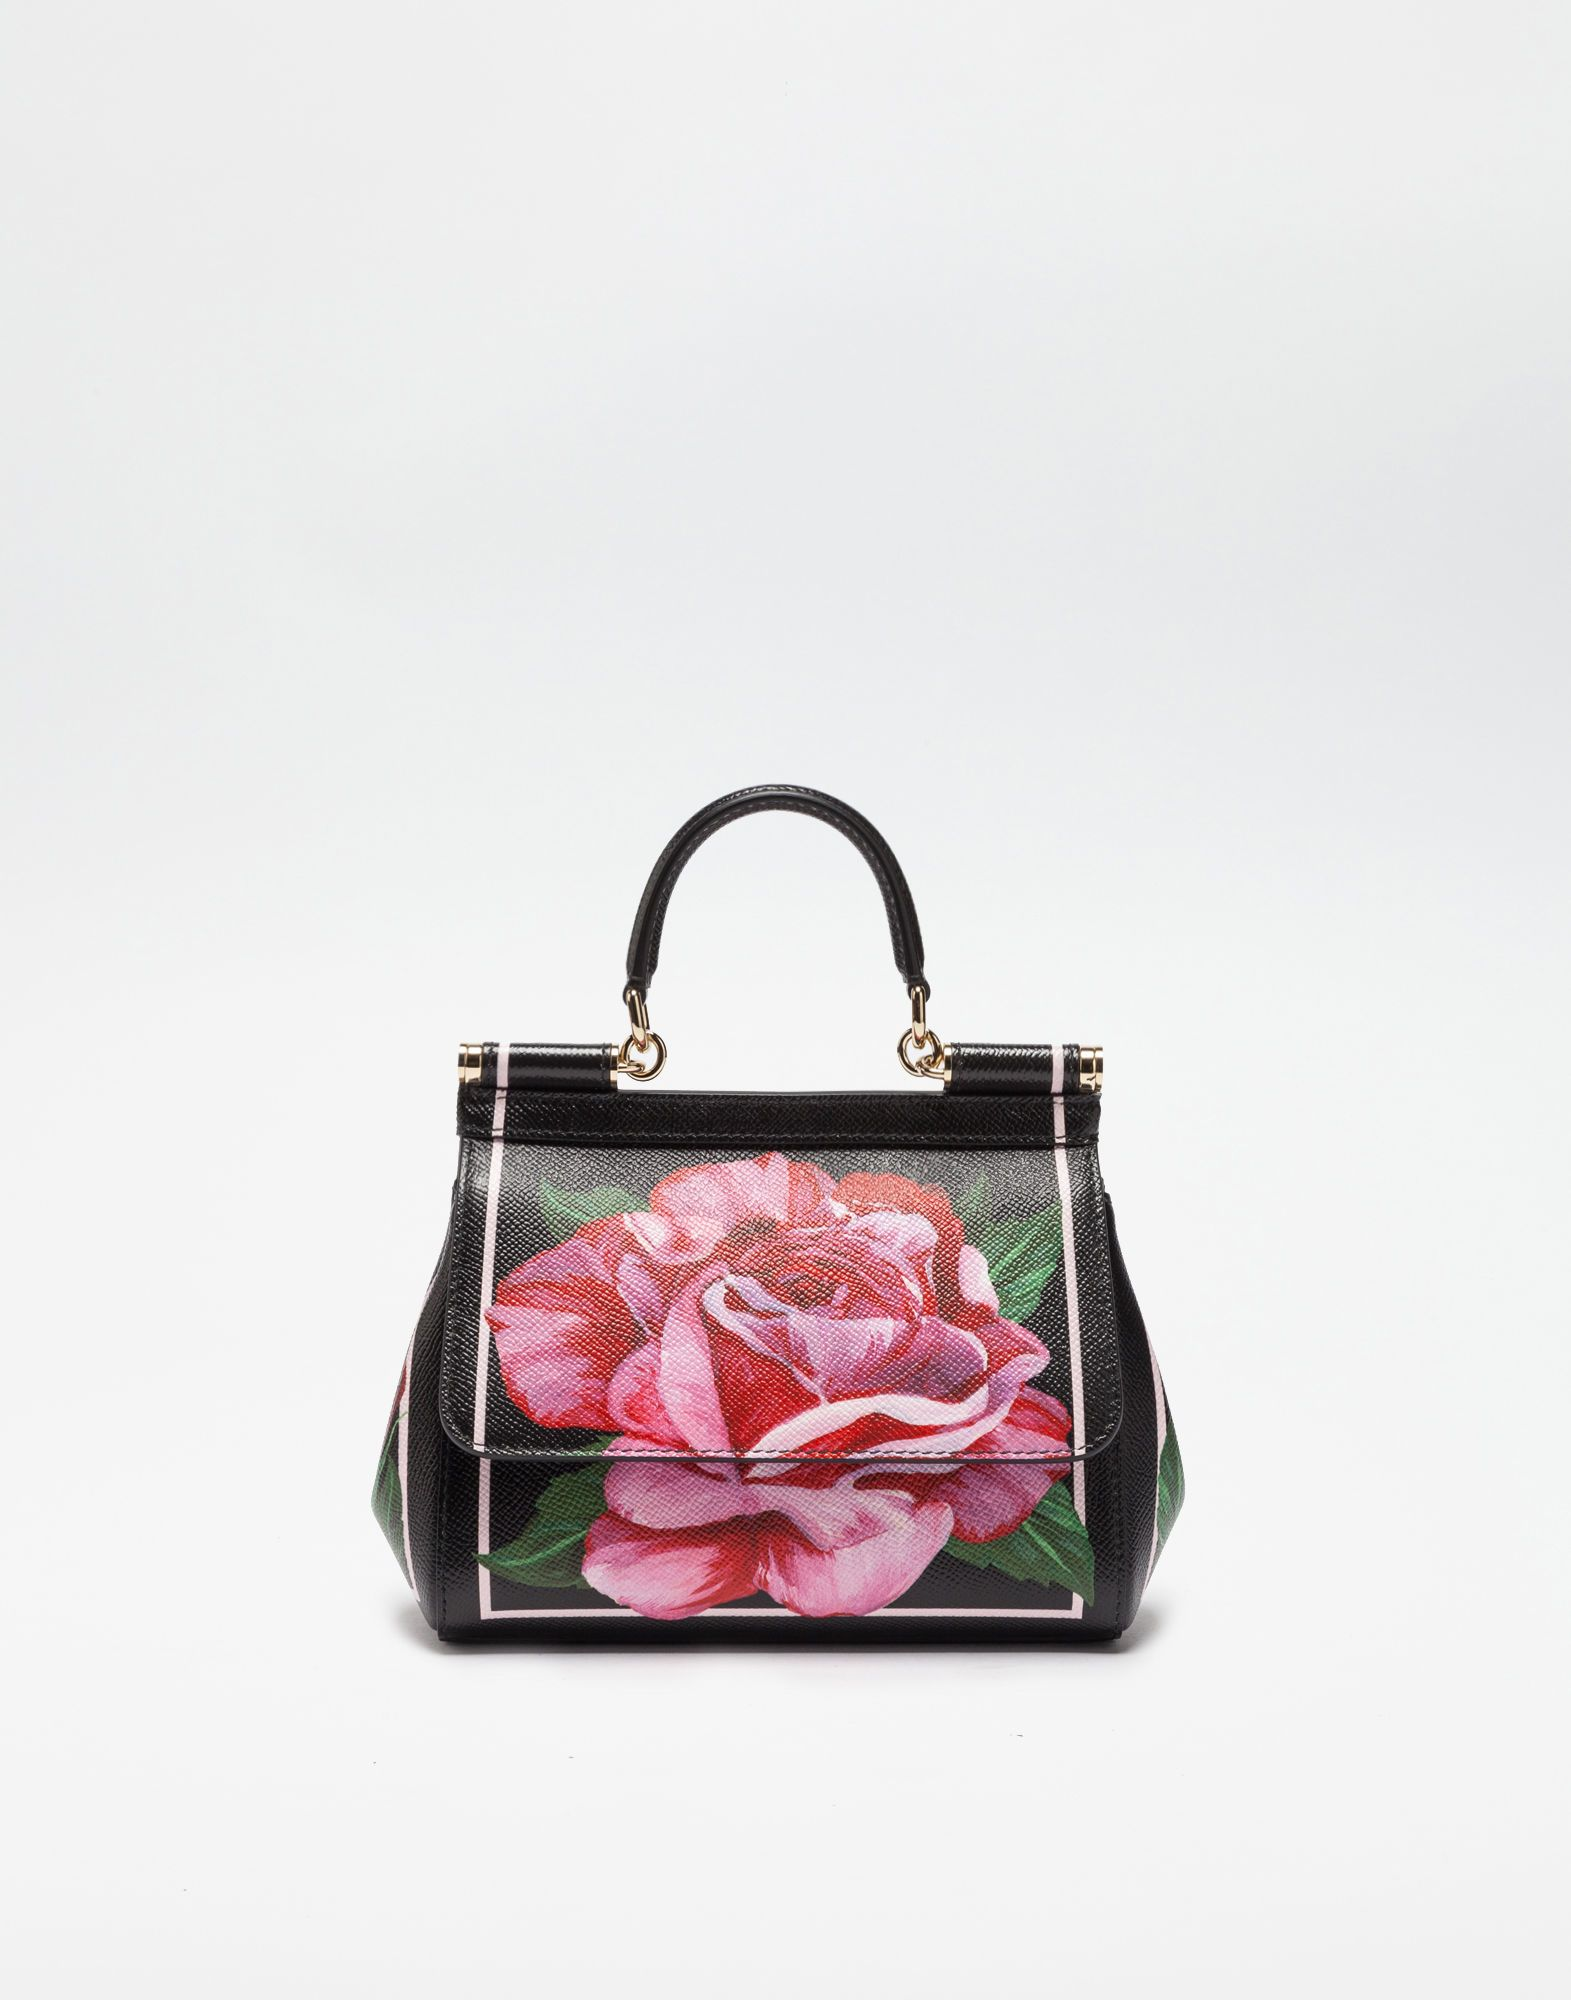 e9bb85a1d0 SMALL SICILY BAG IN PRINTED DAUPHINE LEATHER